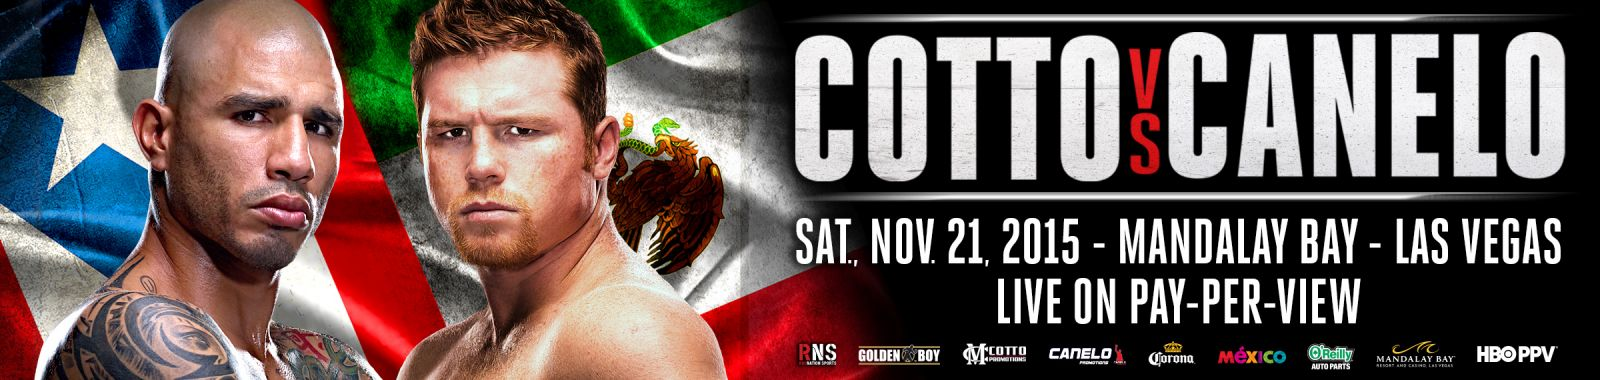 Cotto-Canelo press photo